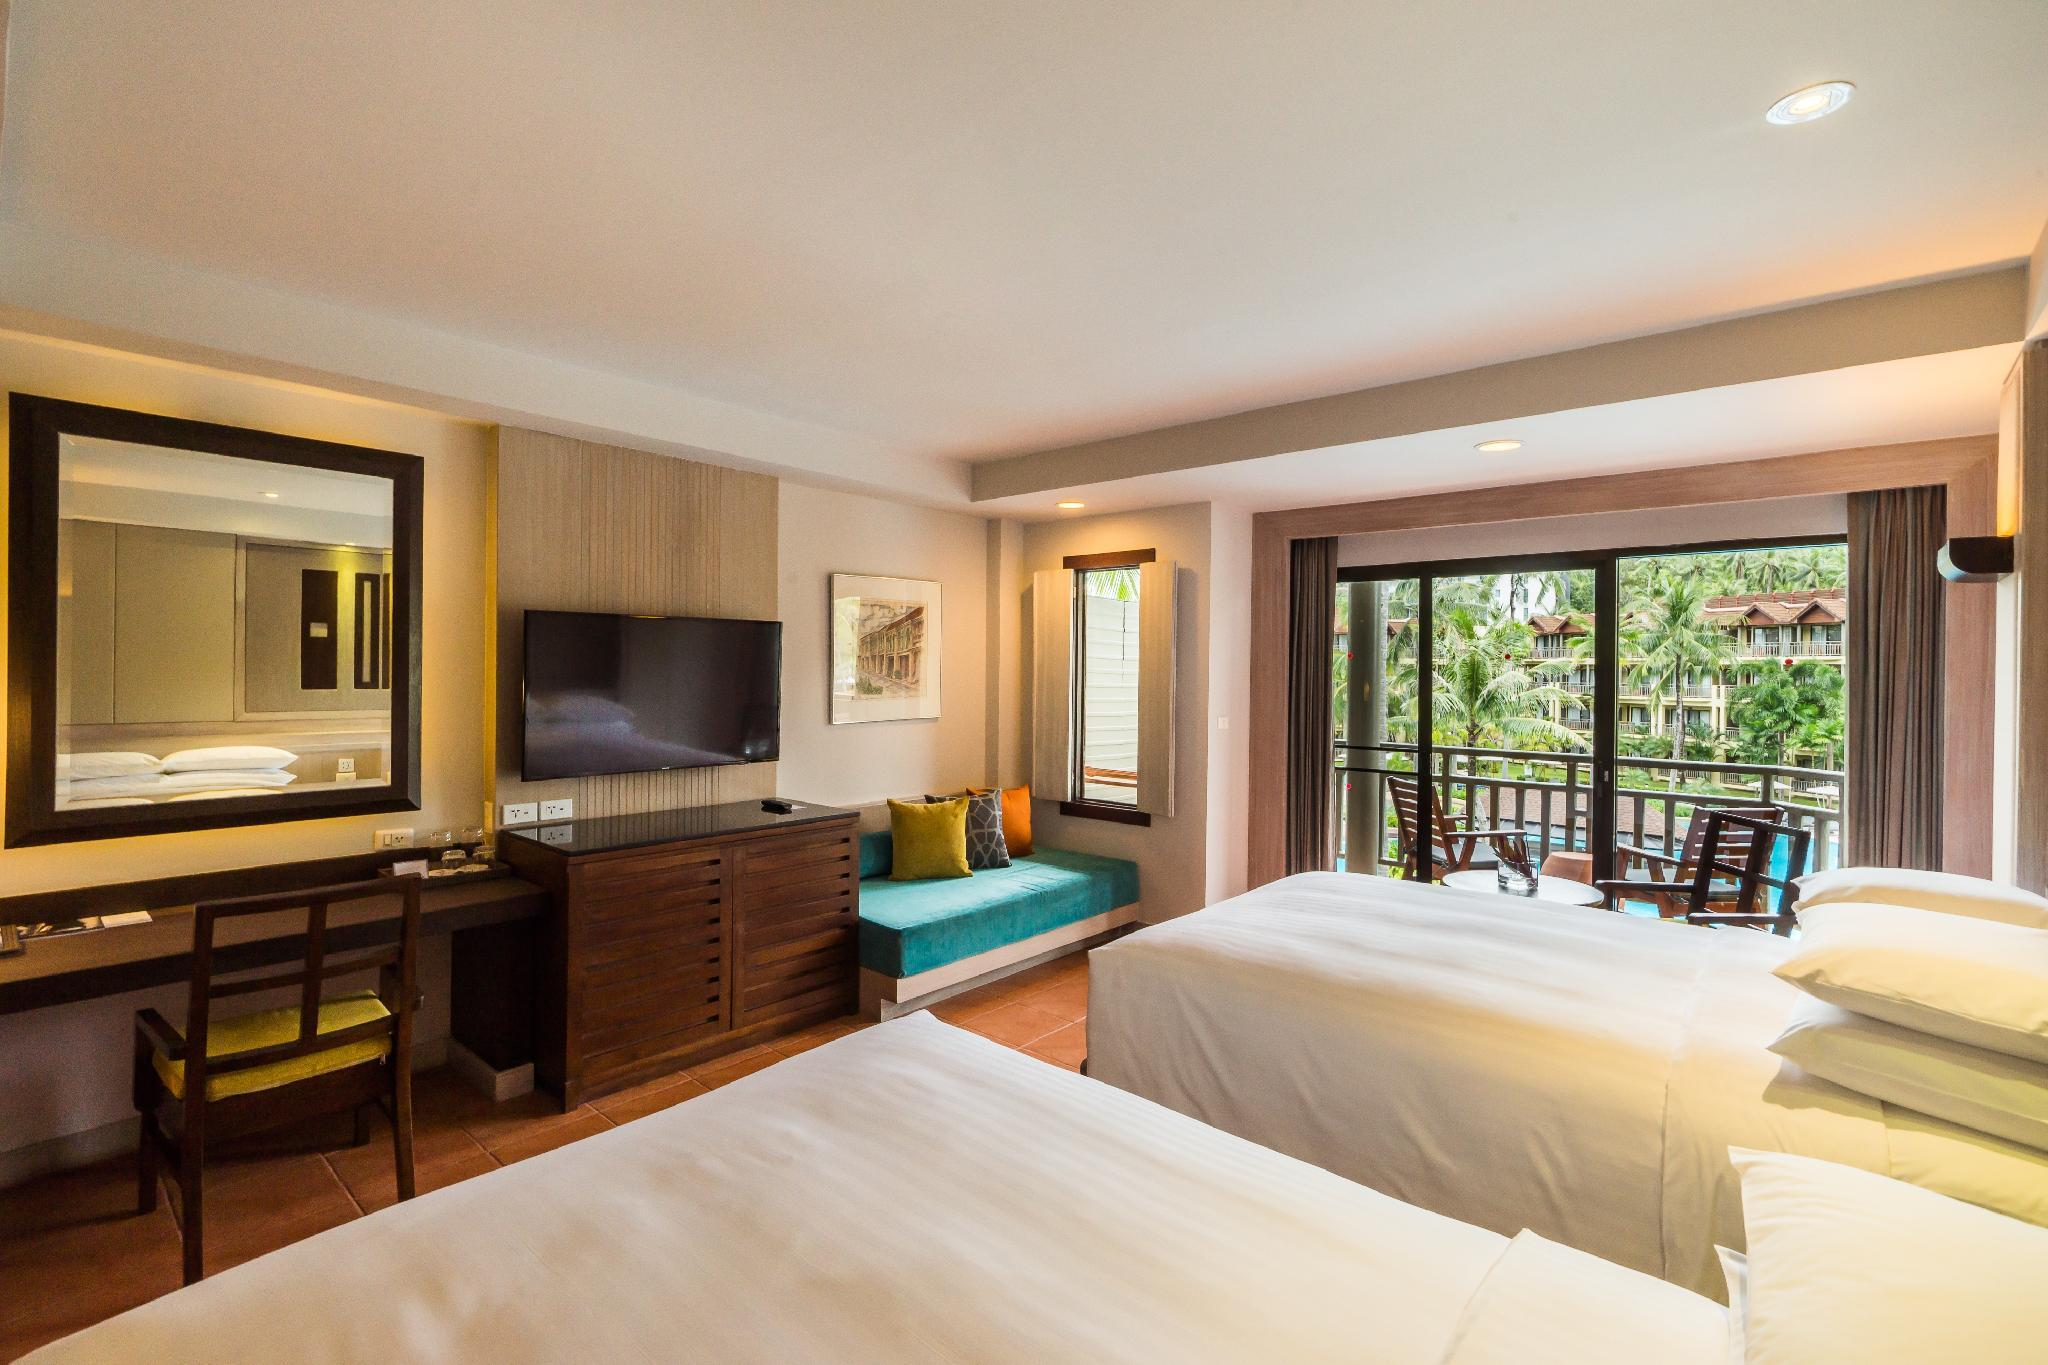 Family Premier Room, Guest room, Pool view, Balcony